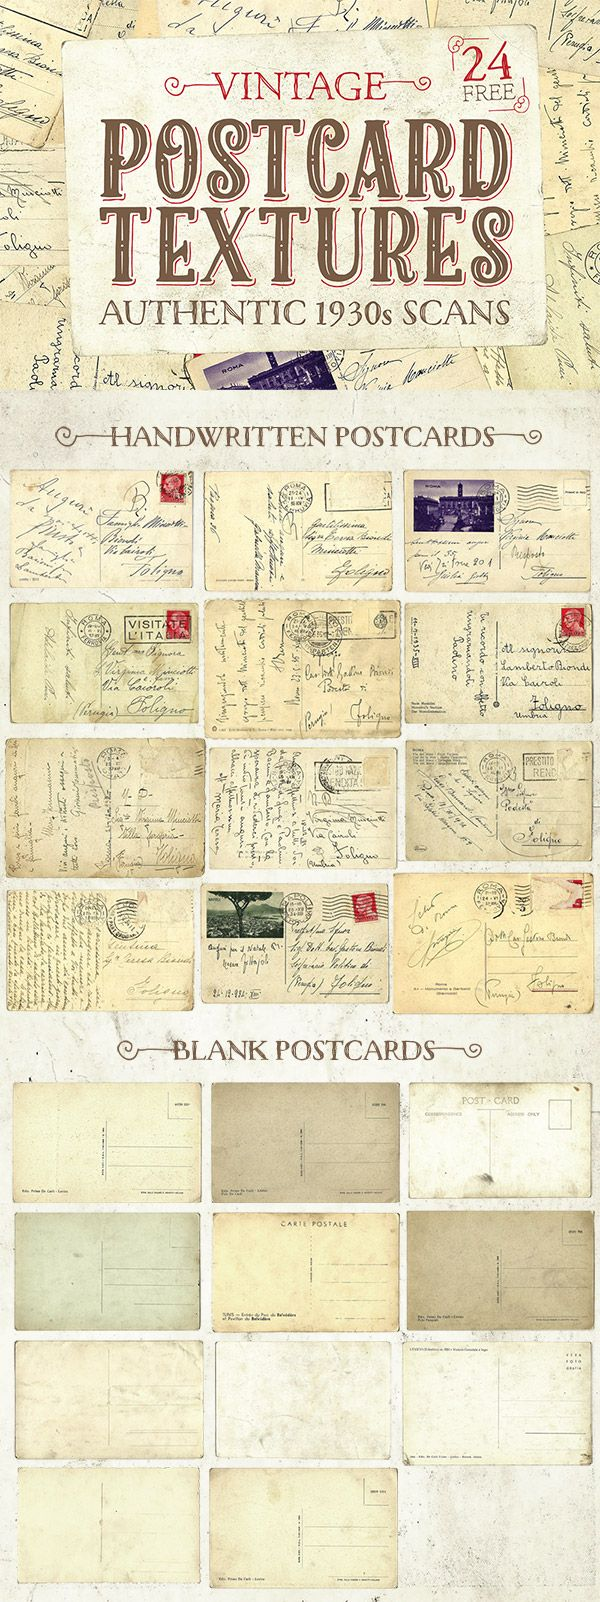 I recently inherited a box of my Grandfather's old possessions, which alongside his WW2 service books and a Great War Memorial Plaque for my great-great-uncle, also contains a number of postcards dated from the mid-1930s. As well as being treasured heirlooms, the aged paper textures of these postcards also make fantastic design resources! Download this …